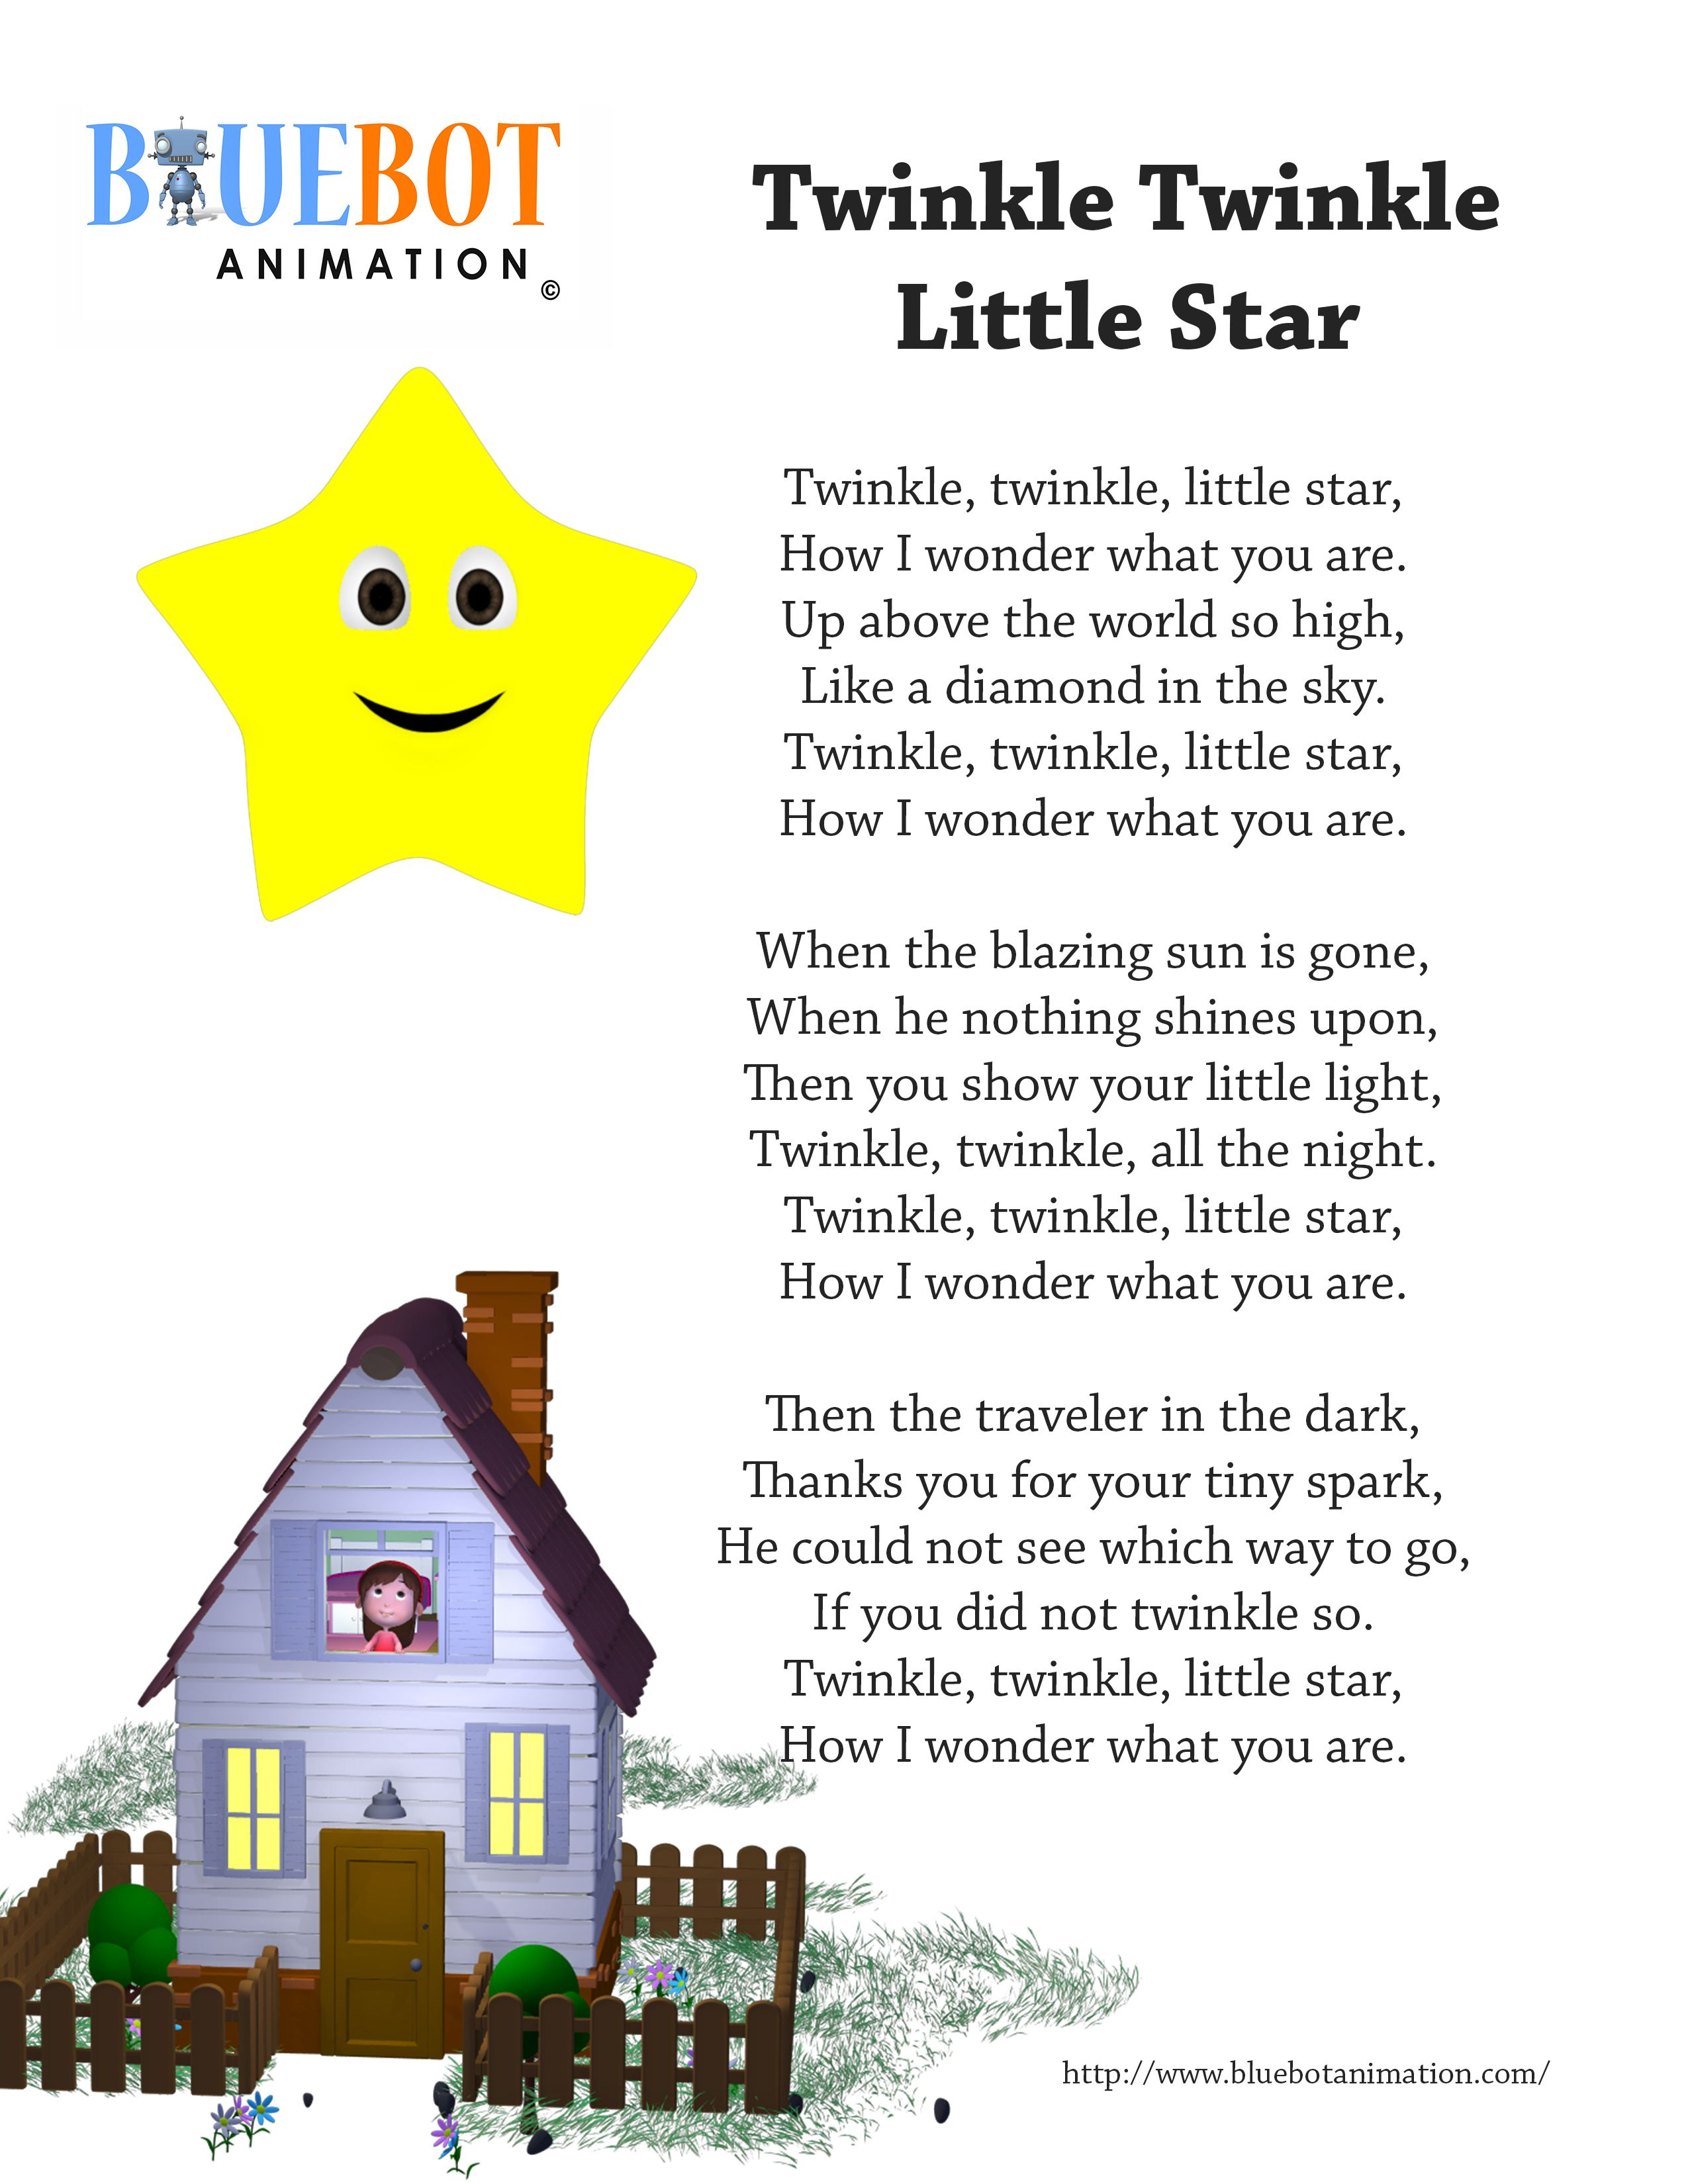 Twinkle twinkle little star nursery rhyme lyrics free for Best old school house songs